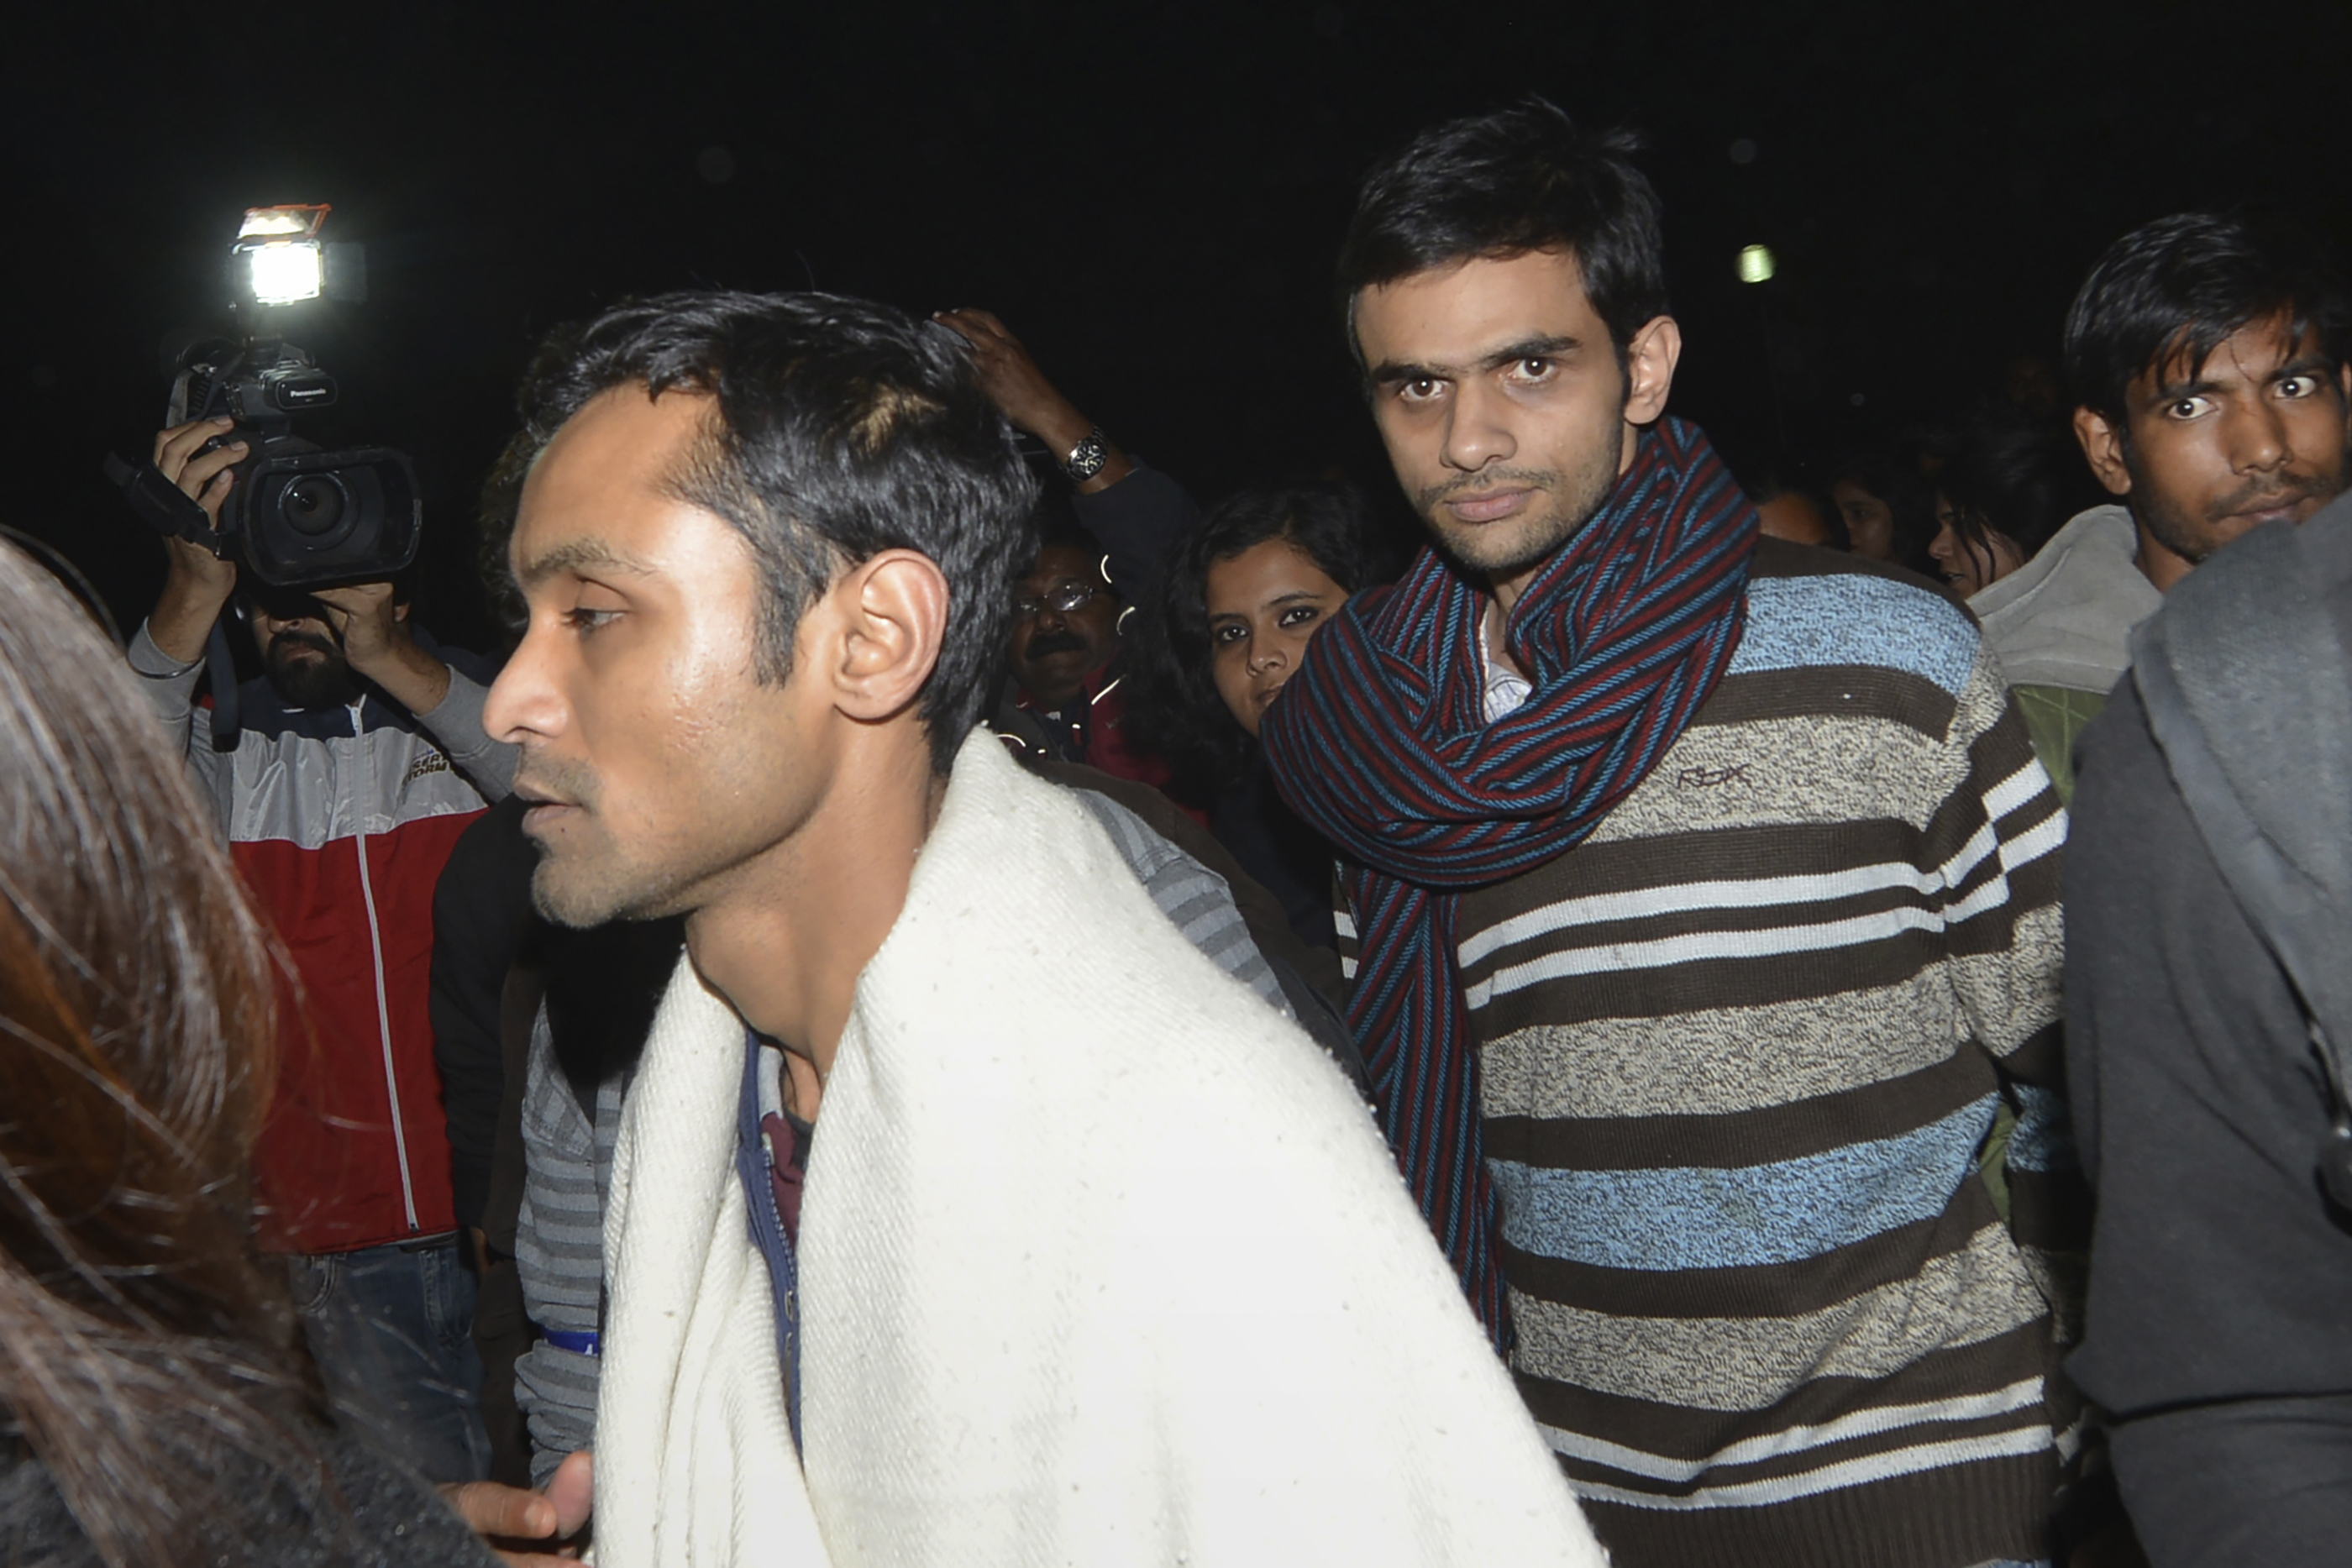 Indian student activists Umar Khalid, center, and Anirban Bhattacharya walk through the campus of New Delhi's Jawaharlal Nehru University on Feb. 23, 2016